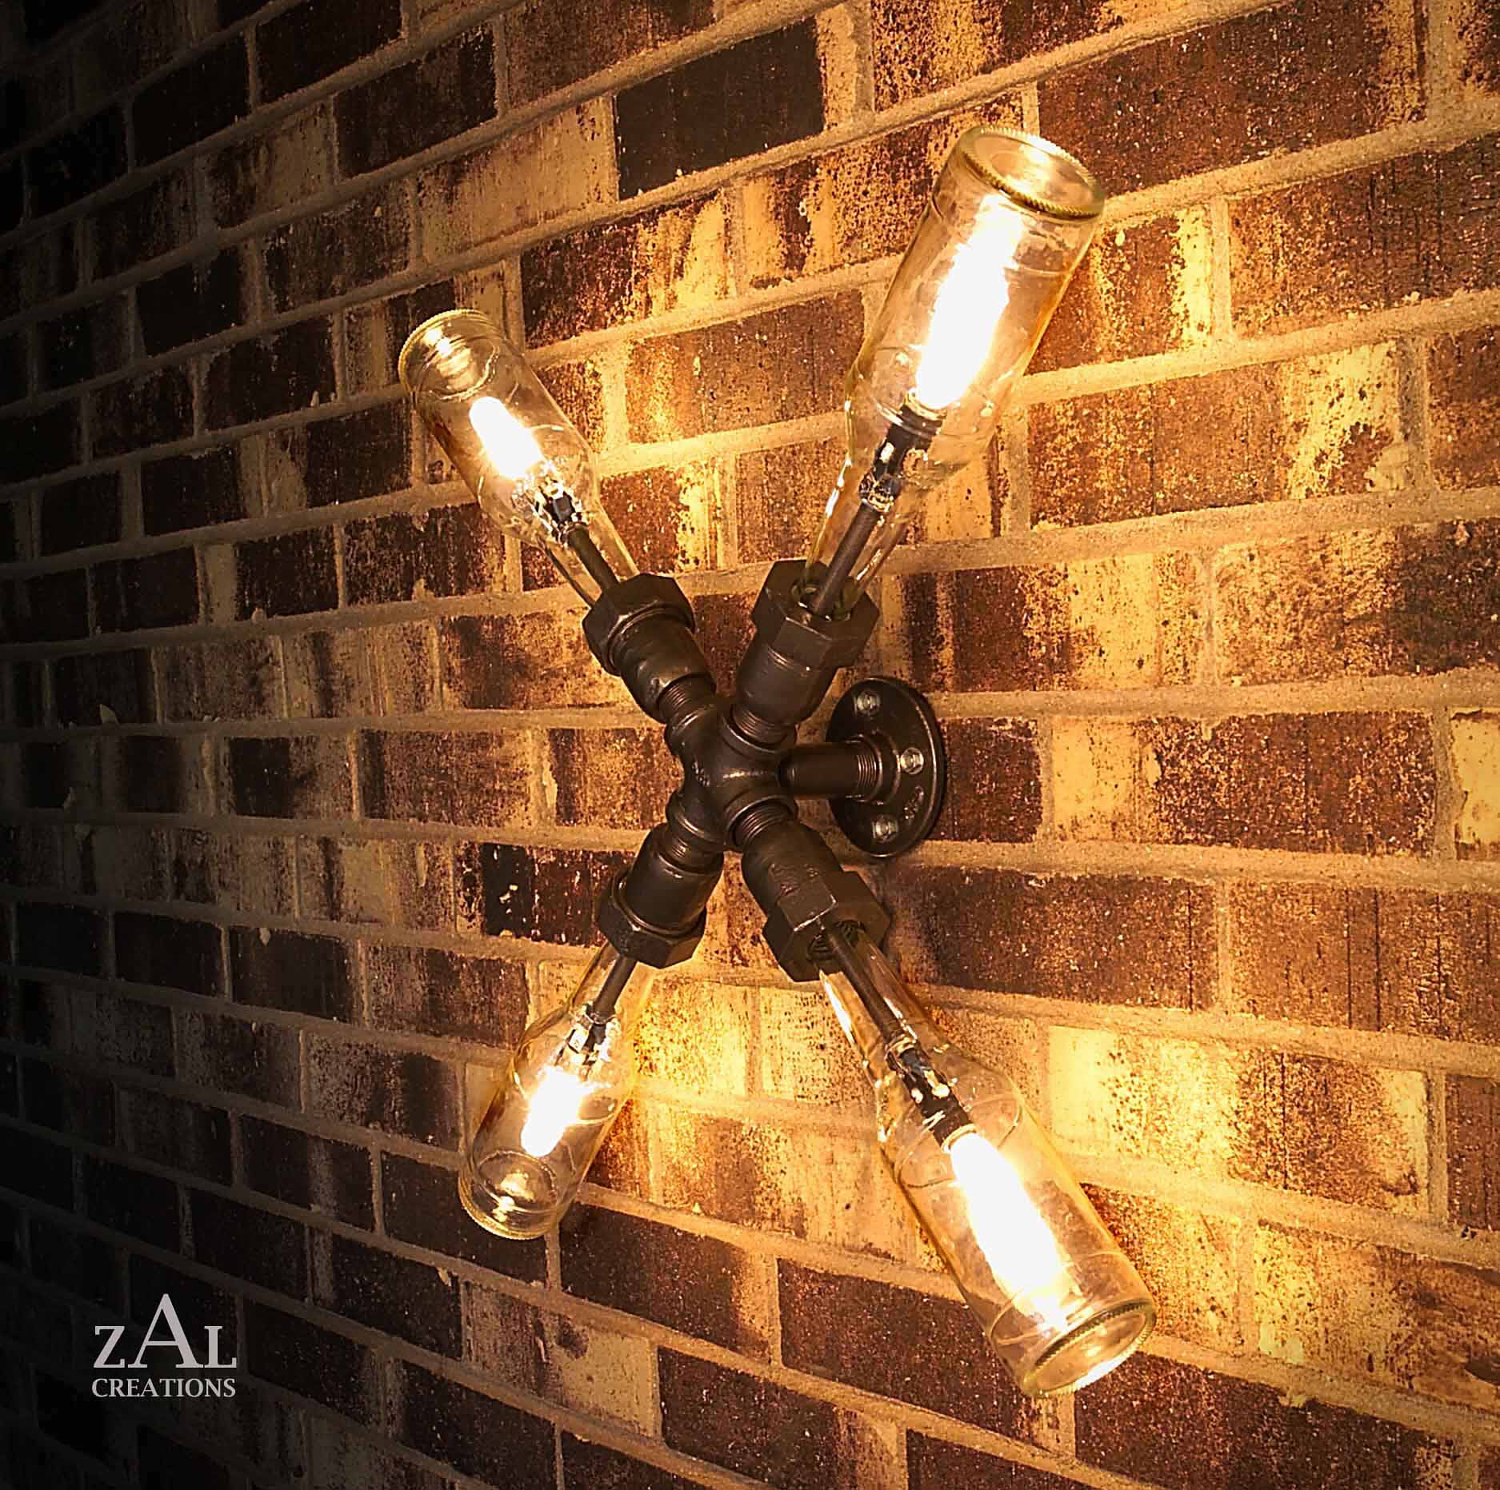 Beer bottle light fixture by Zal Creations (Source: http://www.trendir.com/archives/2015/10/09/edison-light-ideas-beer-bottle-sconce-zal.jpg)